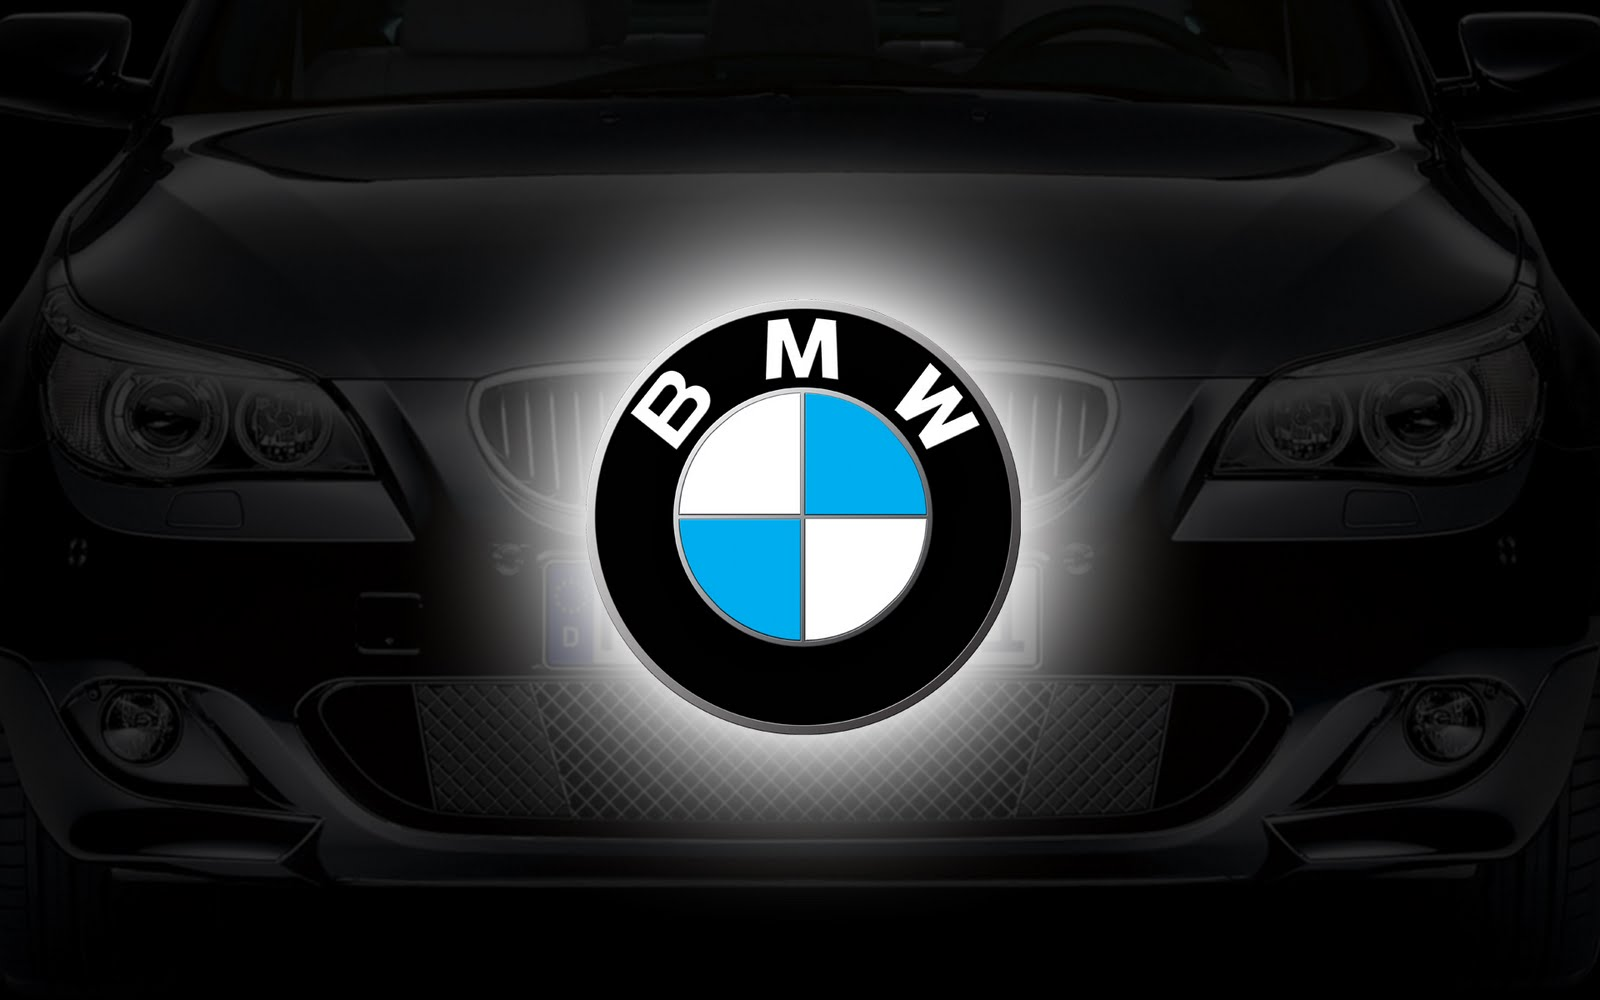 hot cars bmw logo bmw 2011 logo bmw logo png jpg. Black Bedroom Furniture Sets. Home Design Ideas